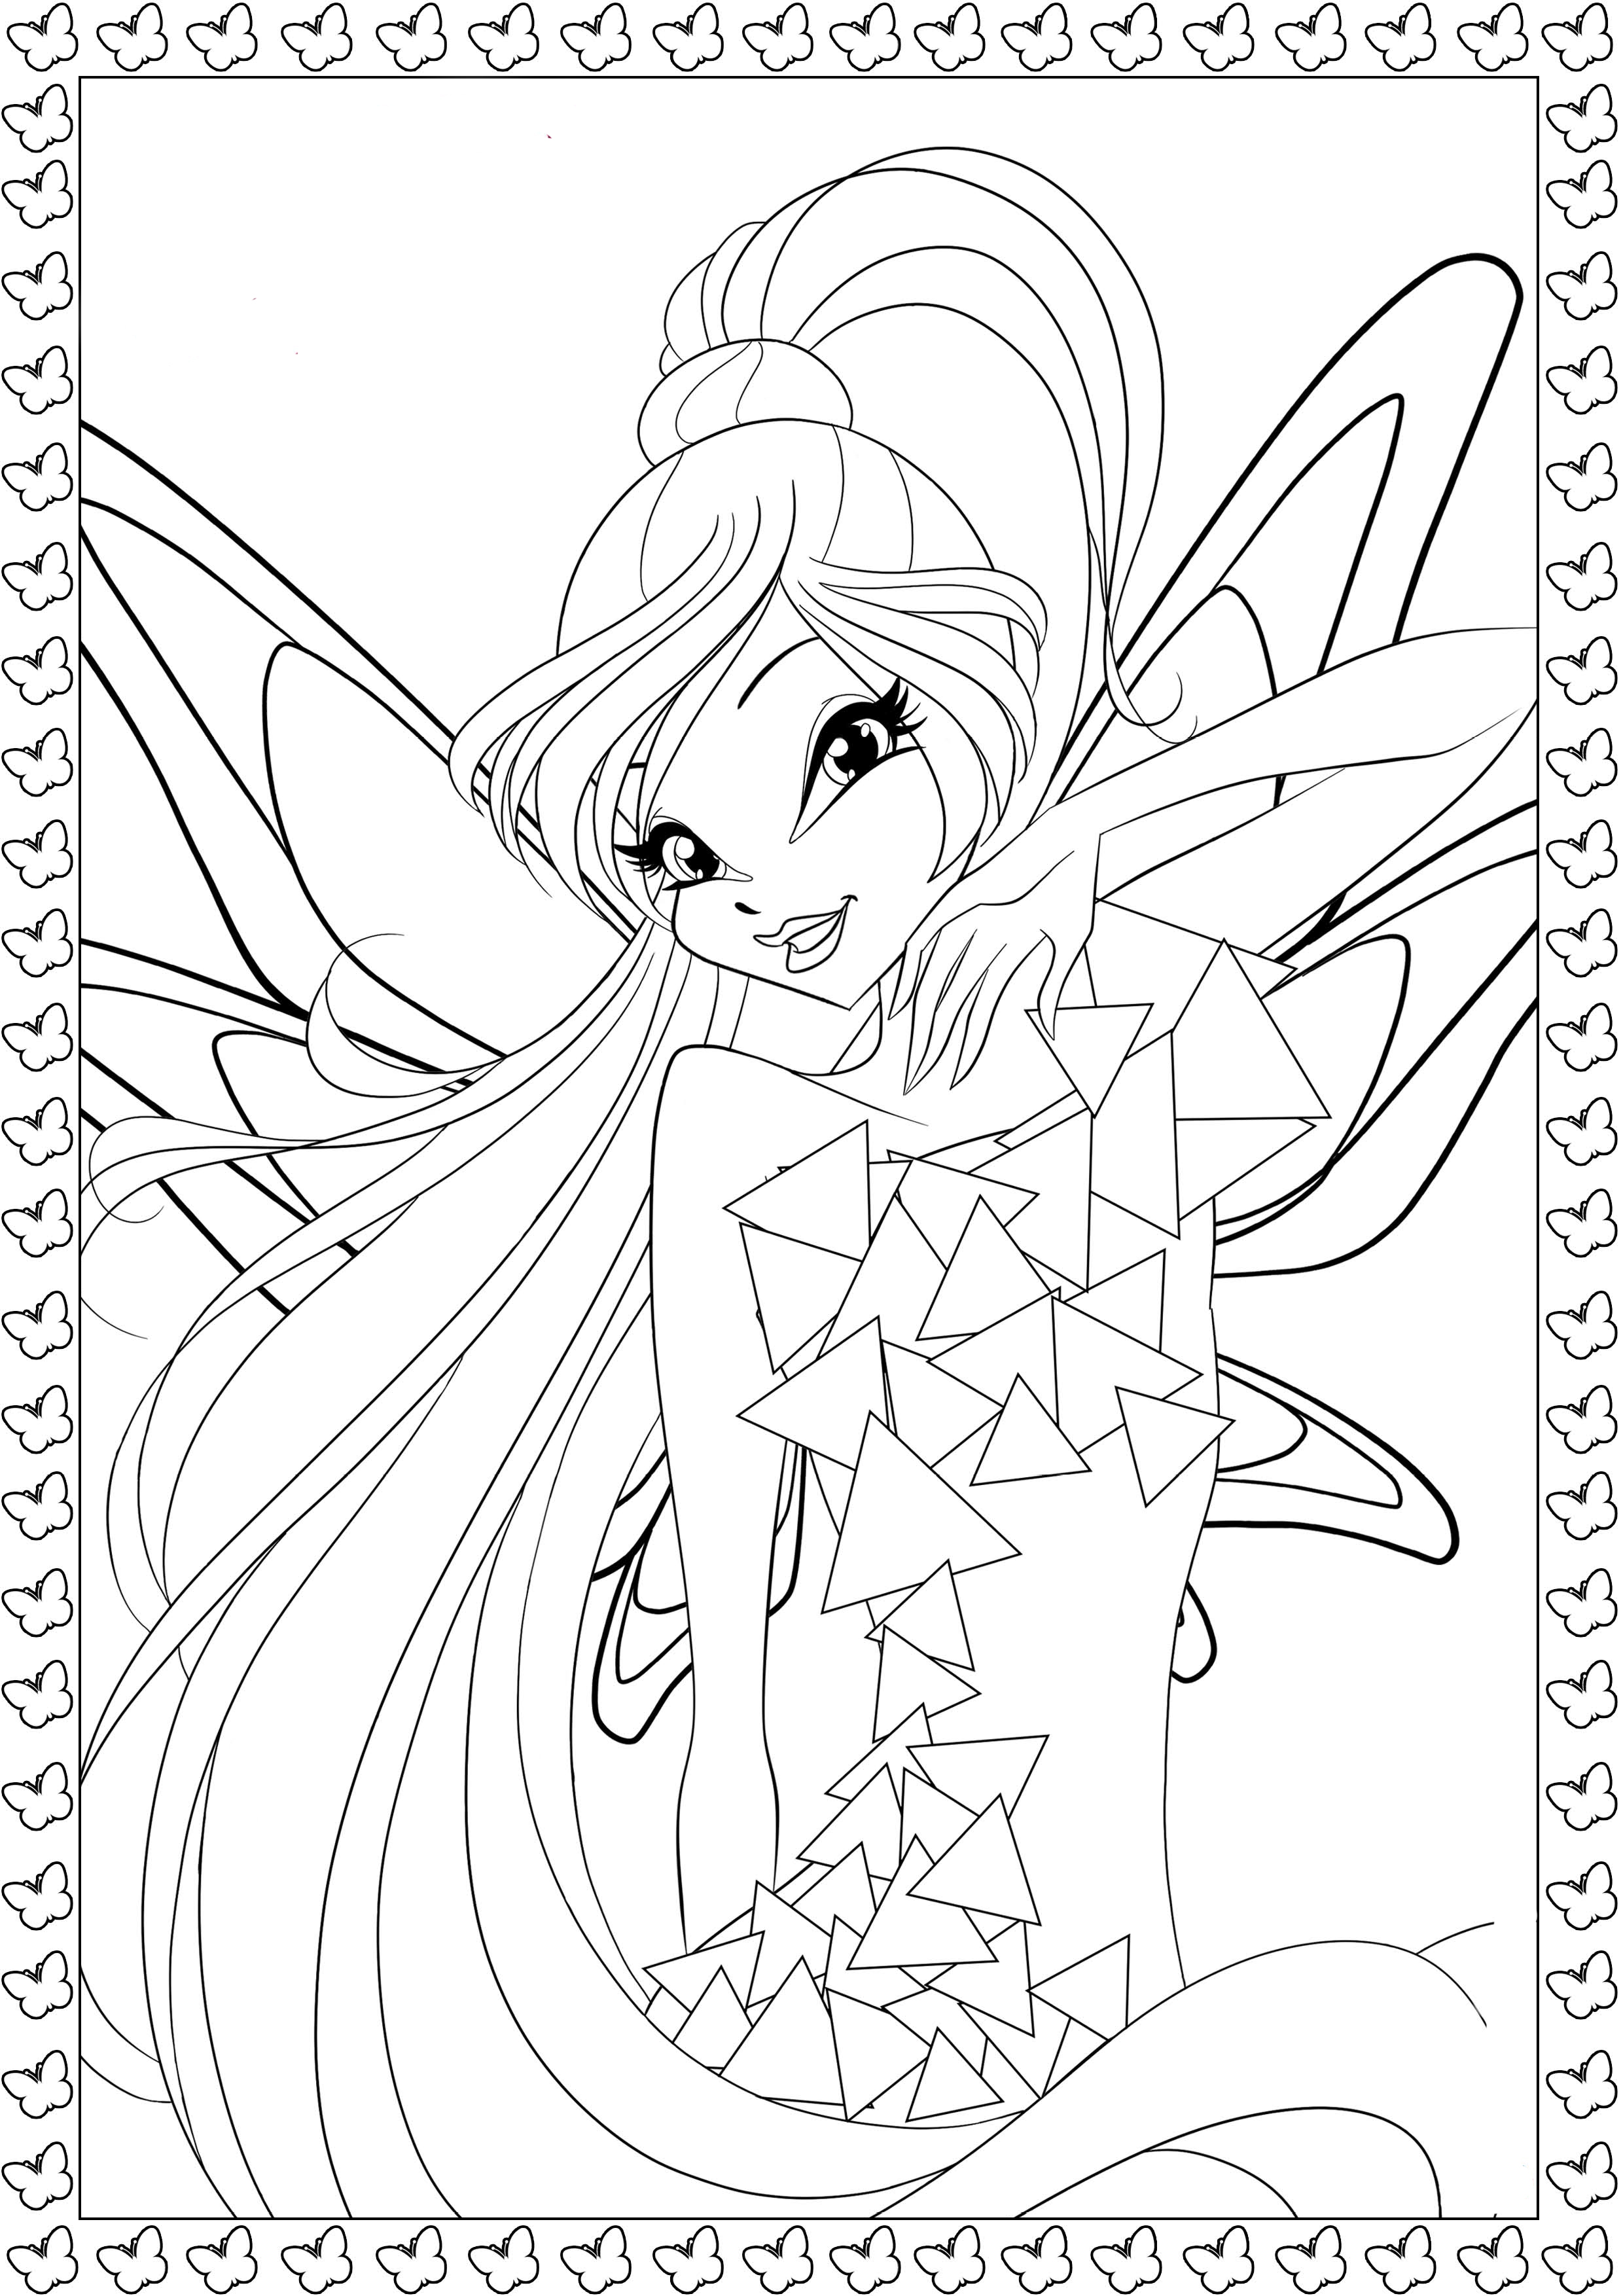 winx club colouring pages believix stella believix set 2 by an81angel on deviantart believix winx club pages colouring